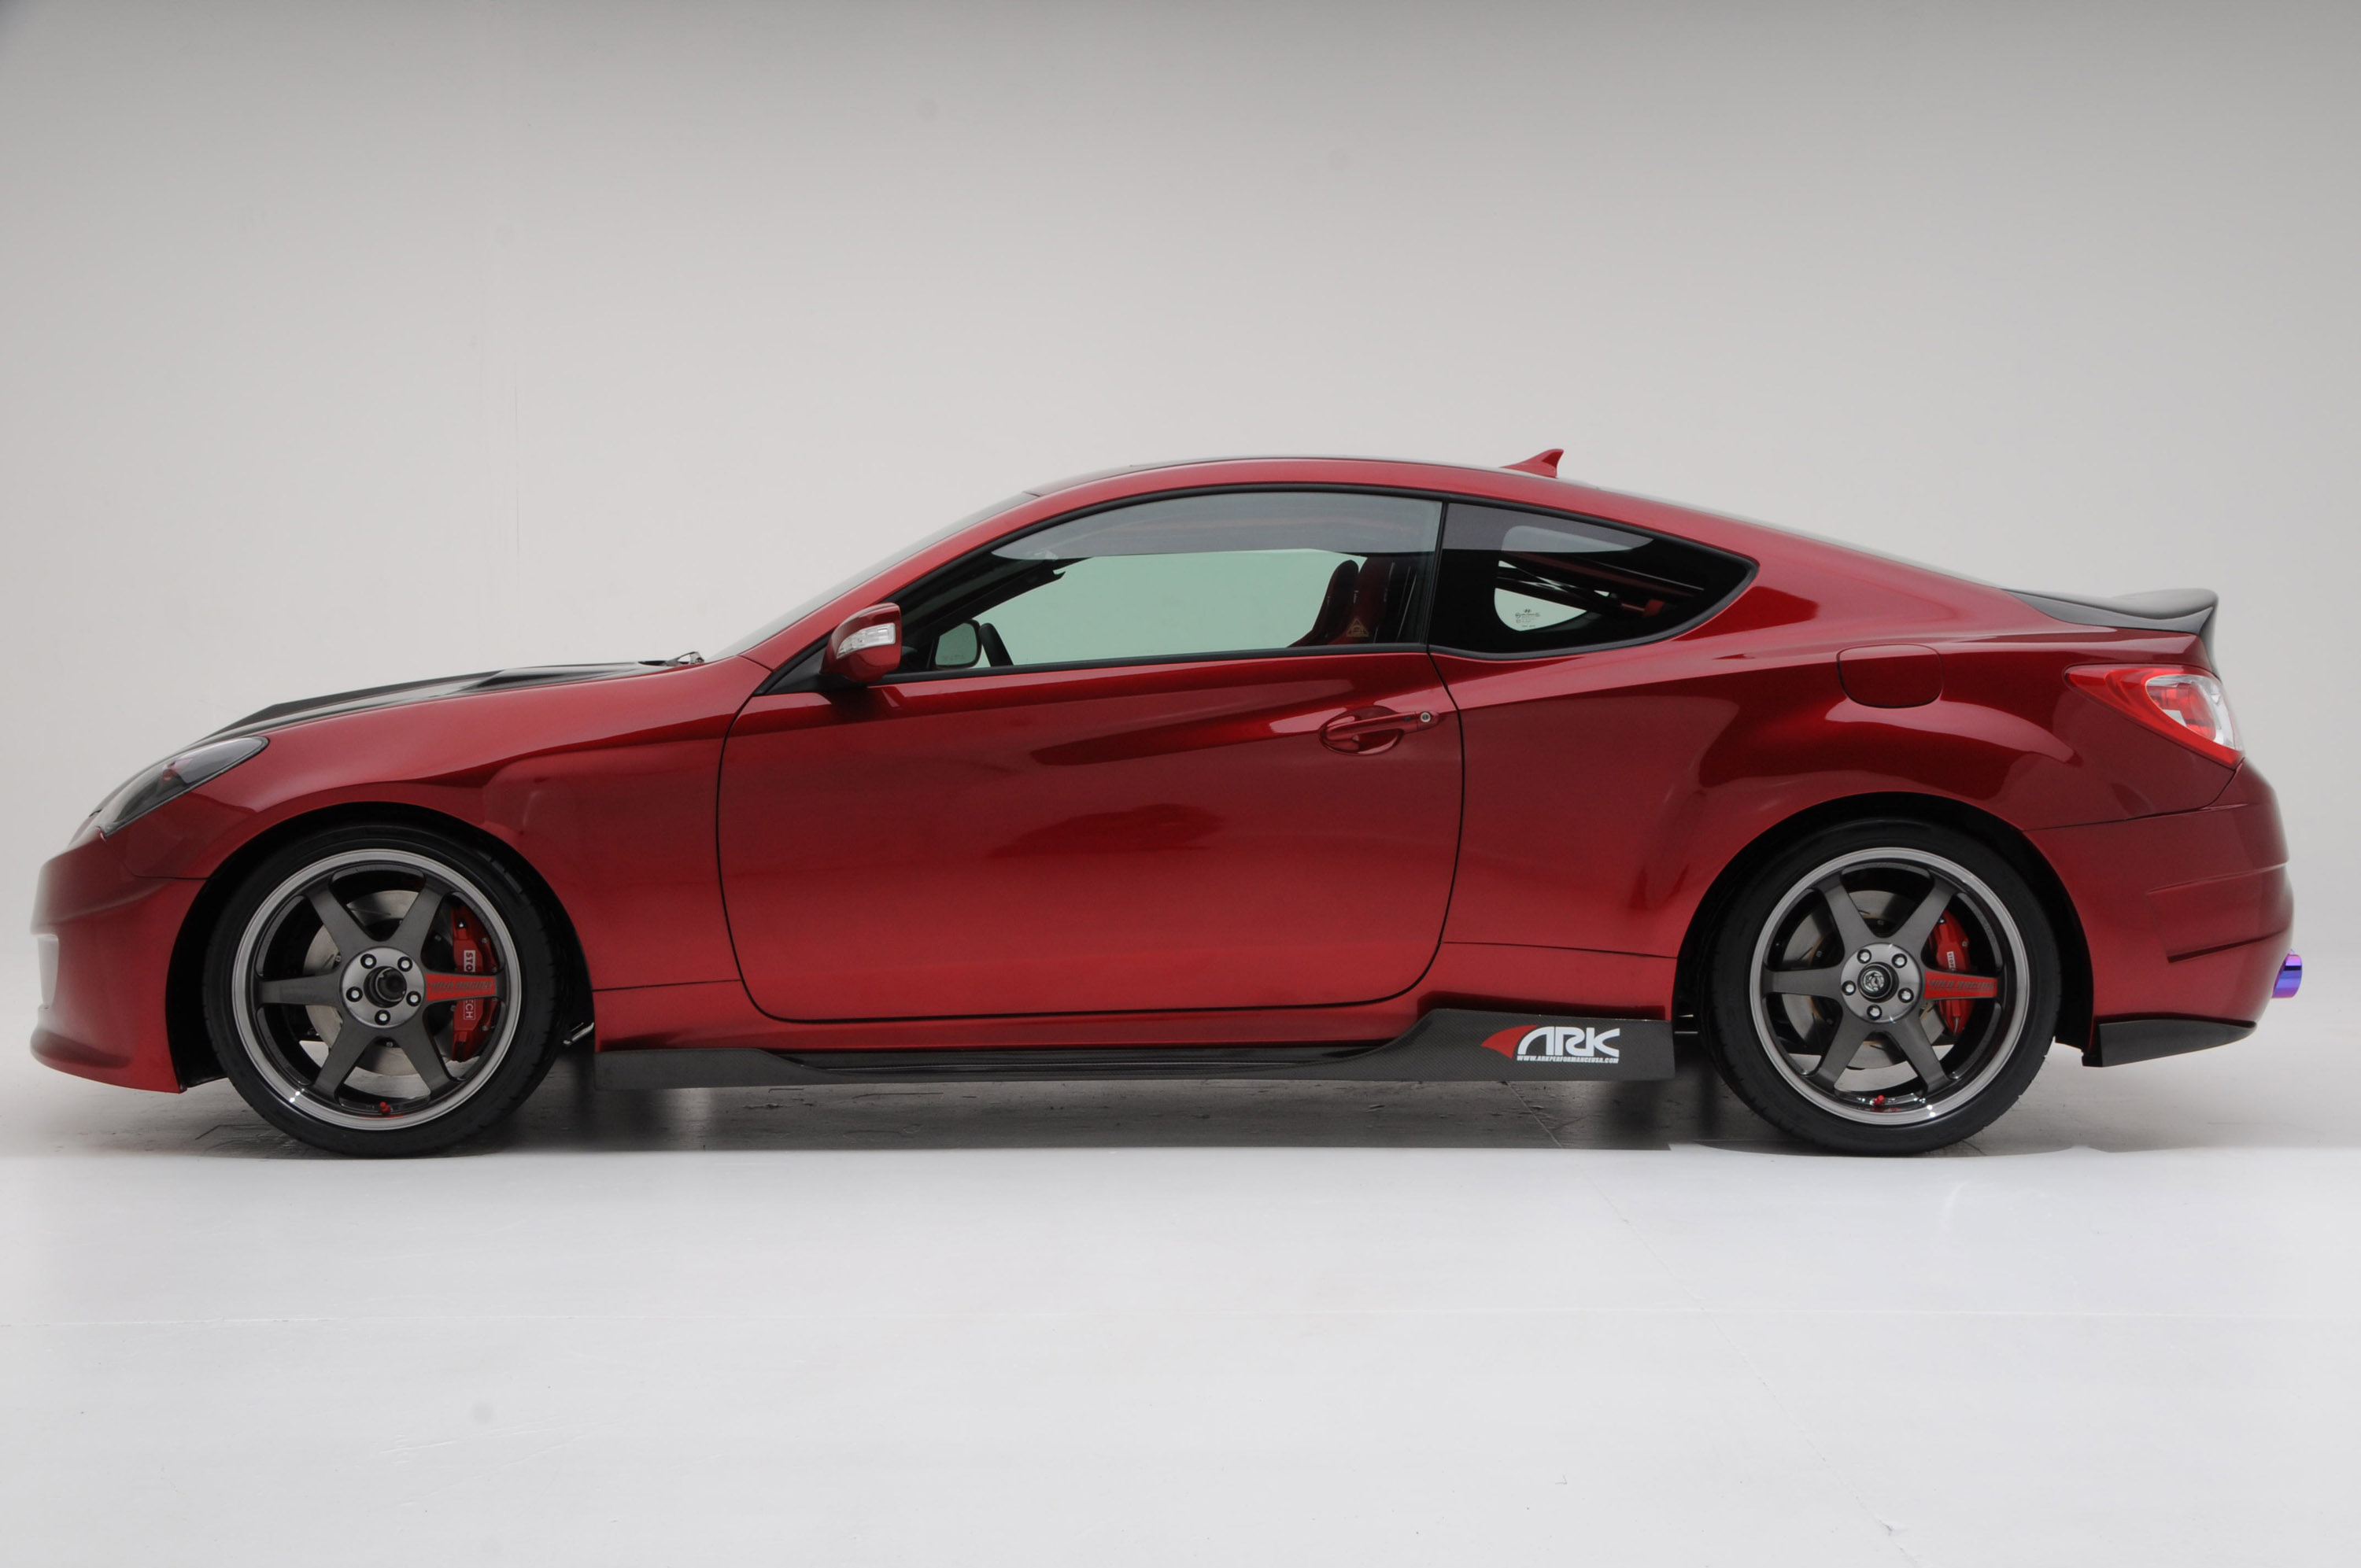 Sema 2010 Preview Ark Track Time Attack Genesis Coupe 3 8l